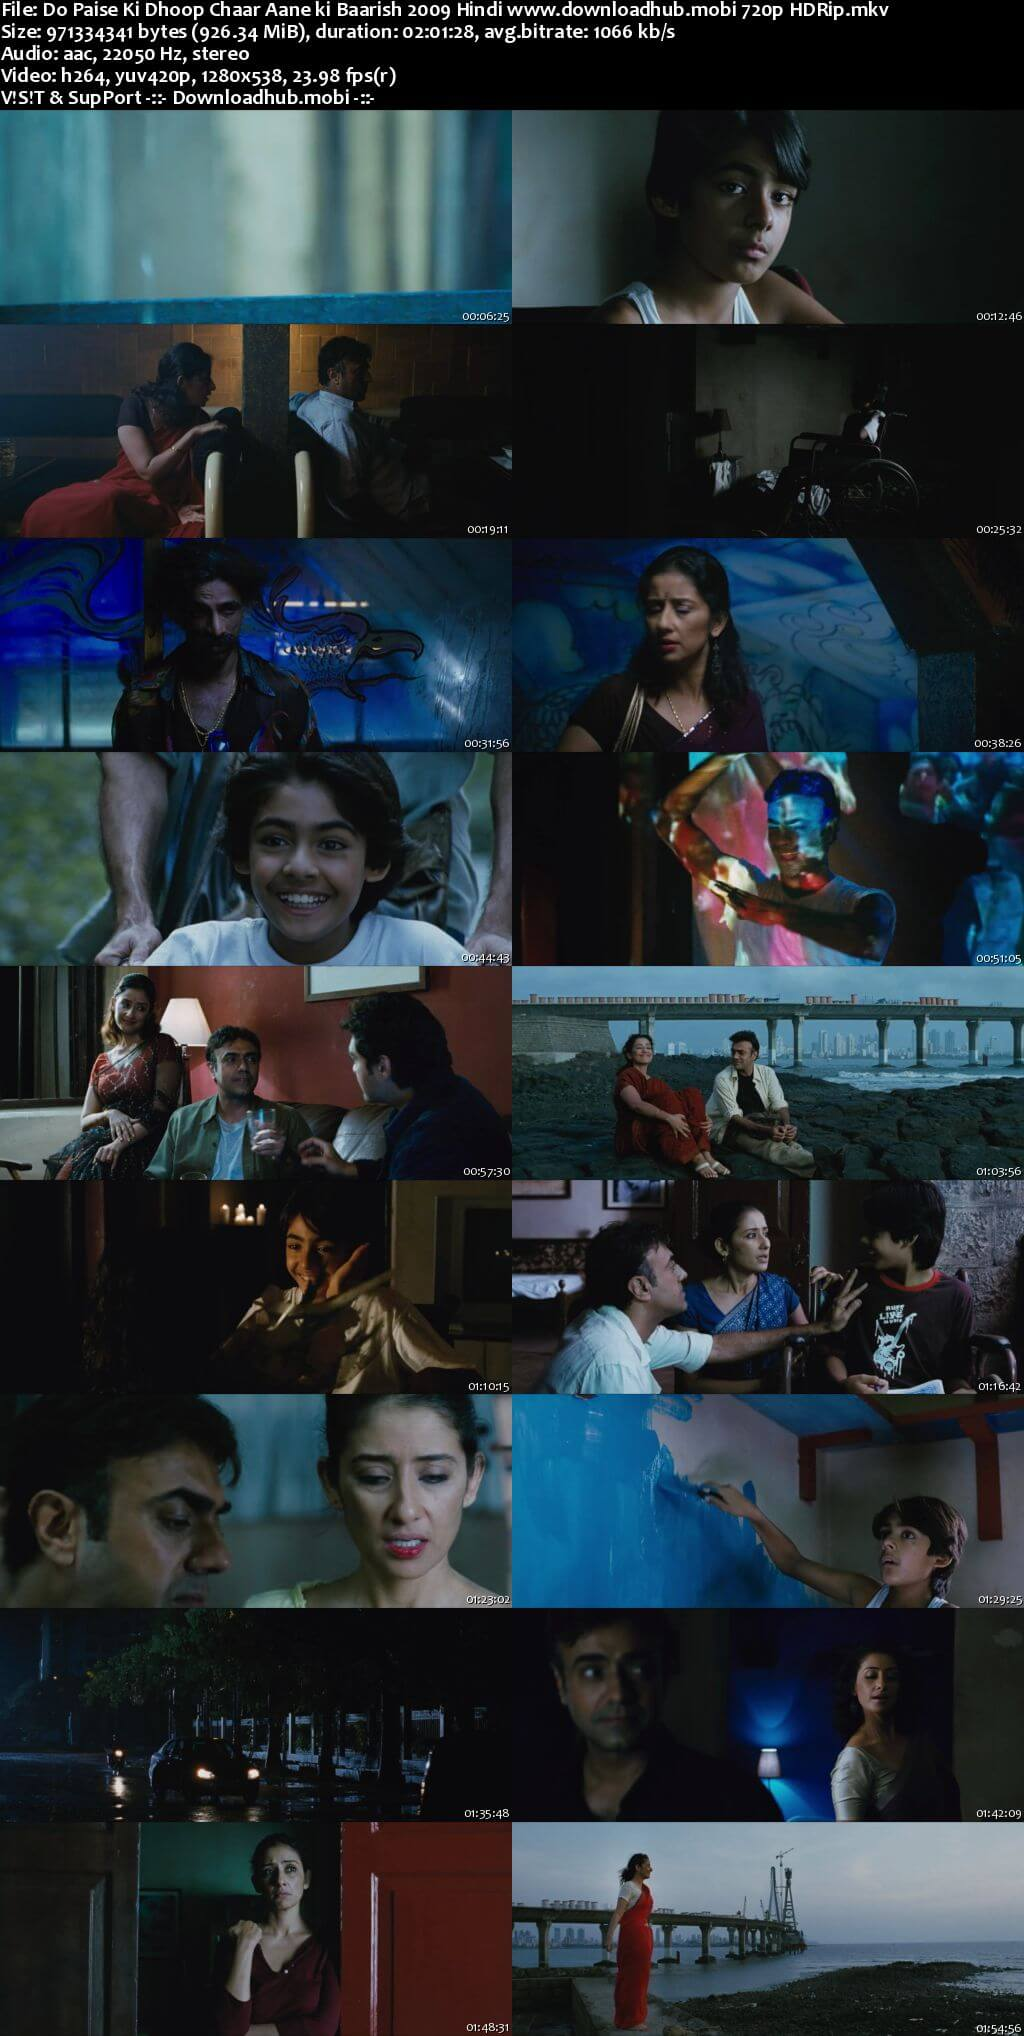 Do Paise Ki Dhoop Chaar Aane Ki Baarish 2009 Hindi 720p HDRip x264